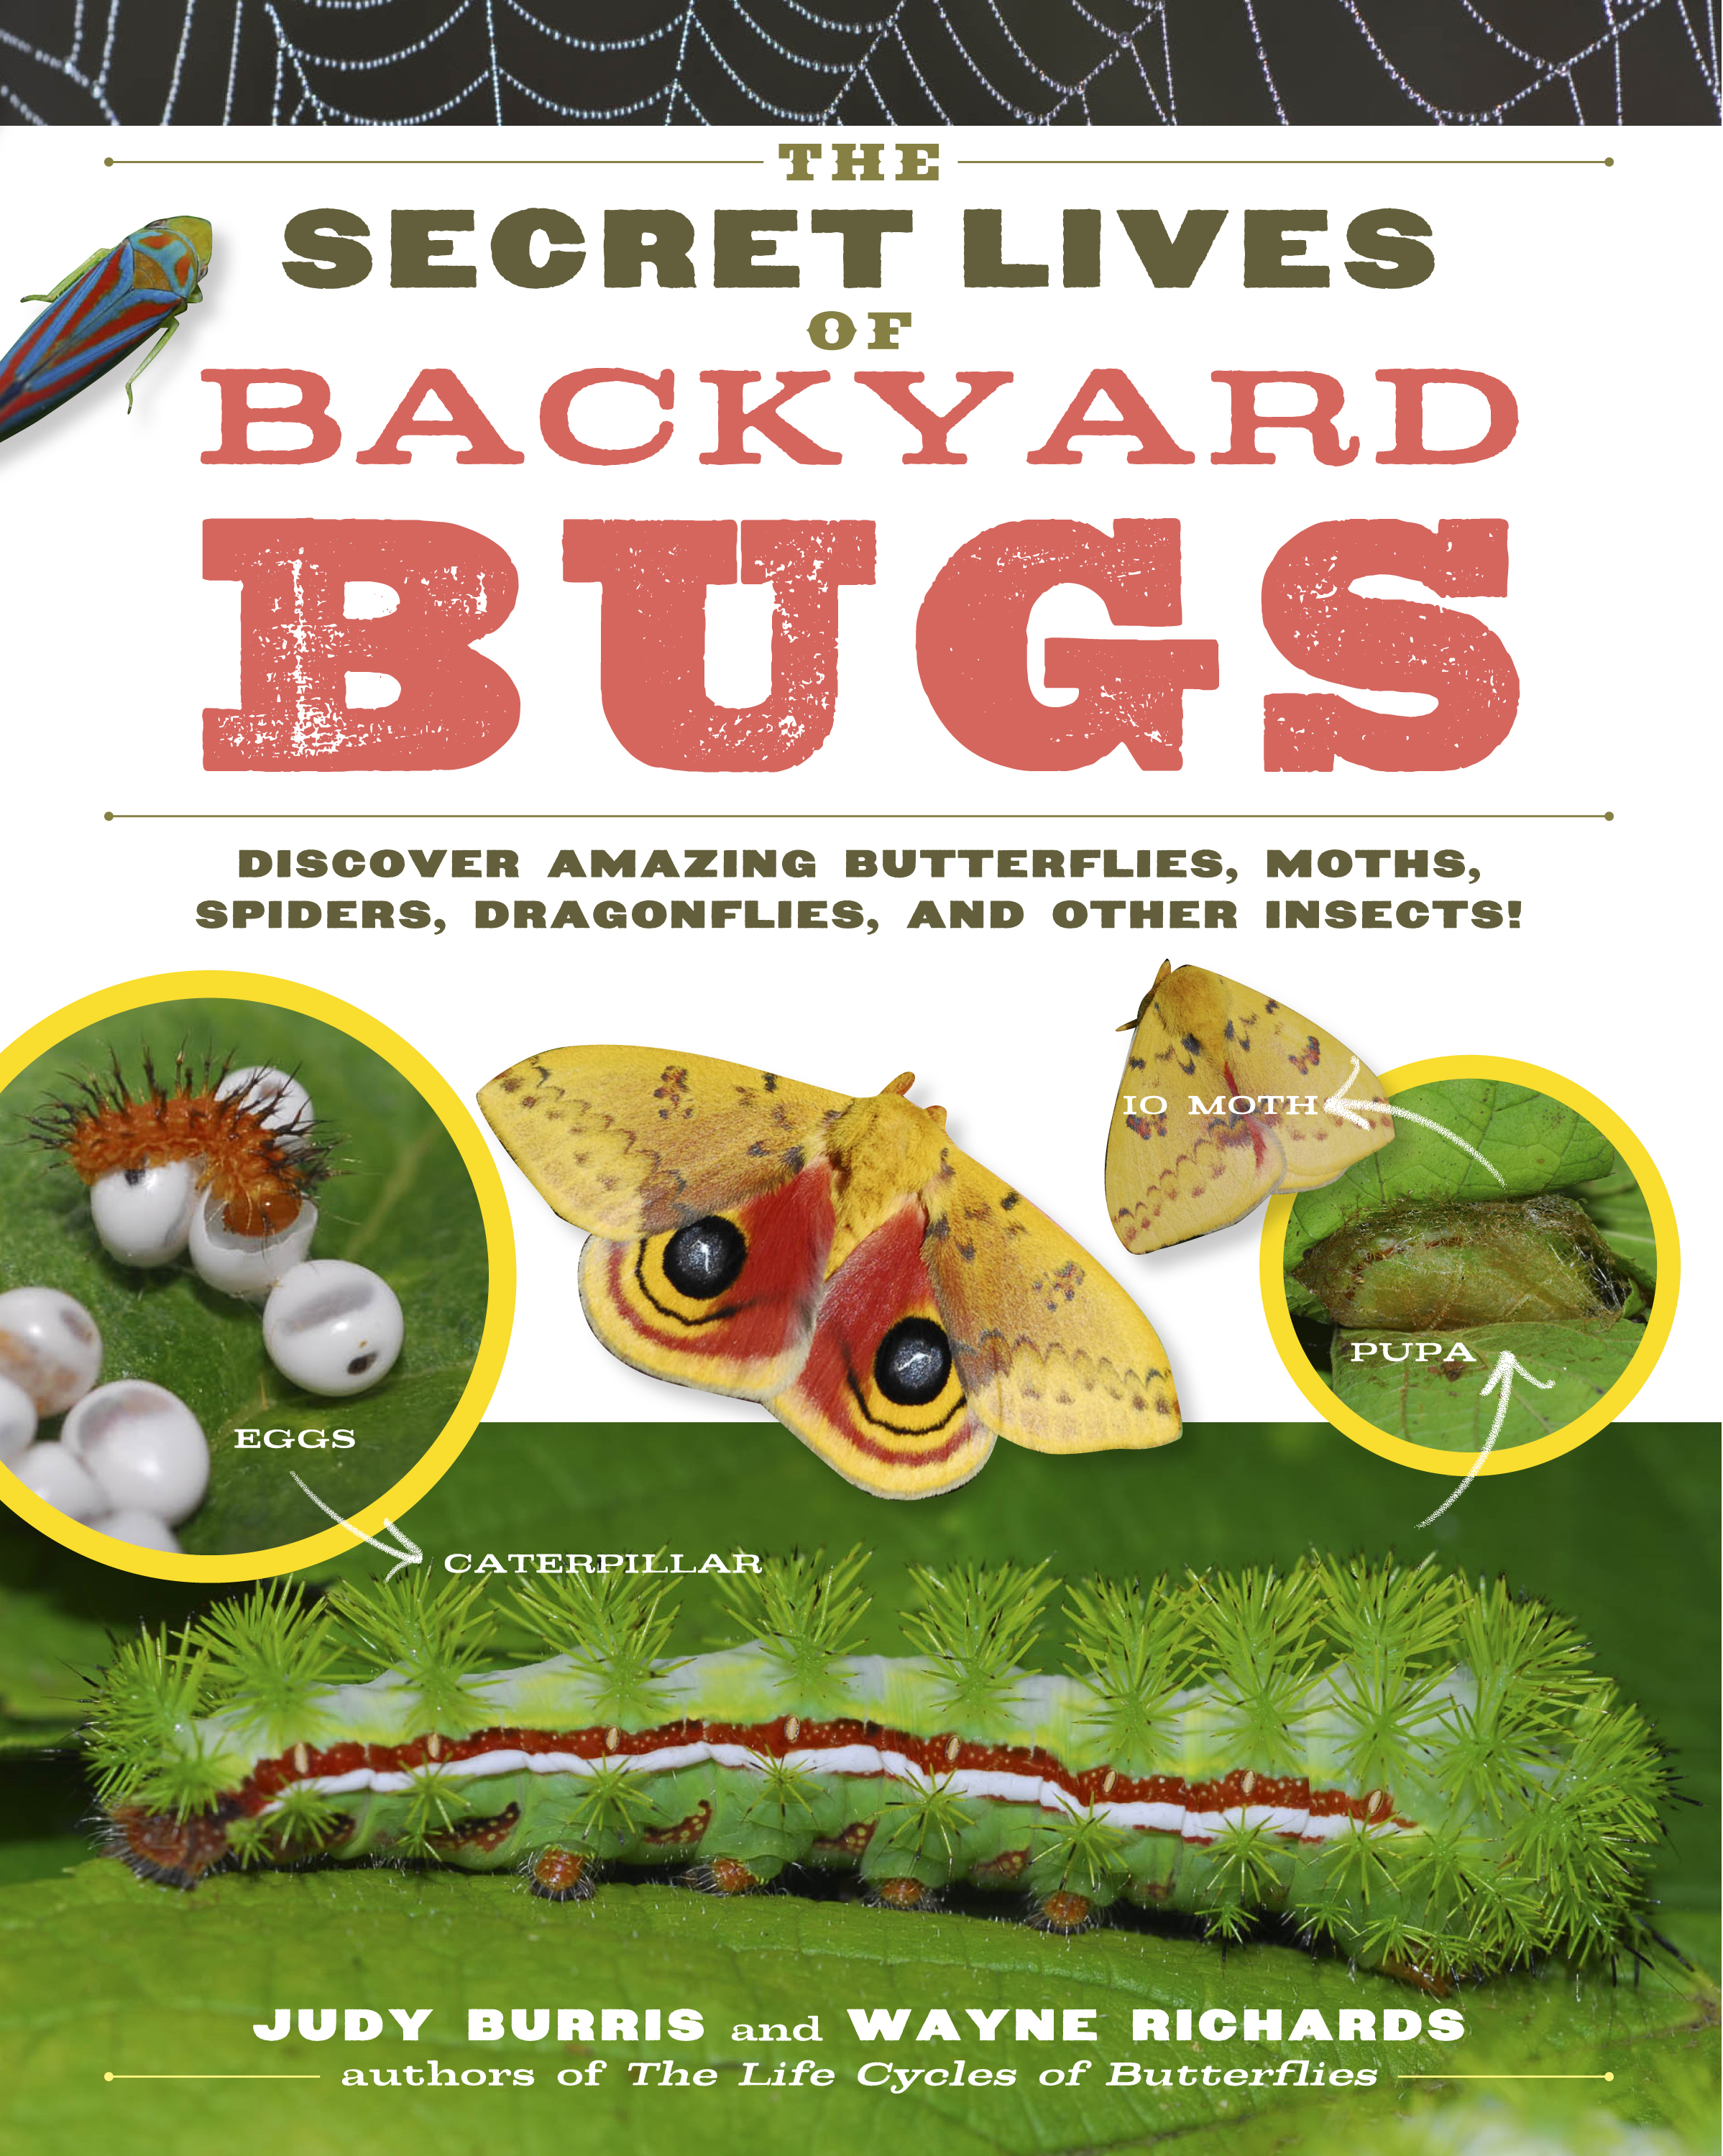 The Secret Lives of Backyard Bugs Discover Amazing Butterflies, Moths, Spiders, Dragonflies, and Other Insects! - Judy Burris